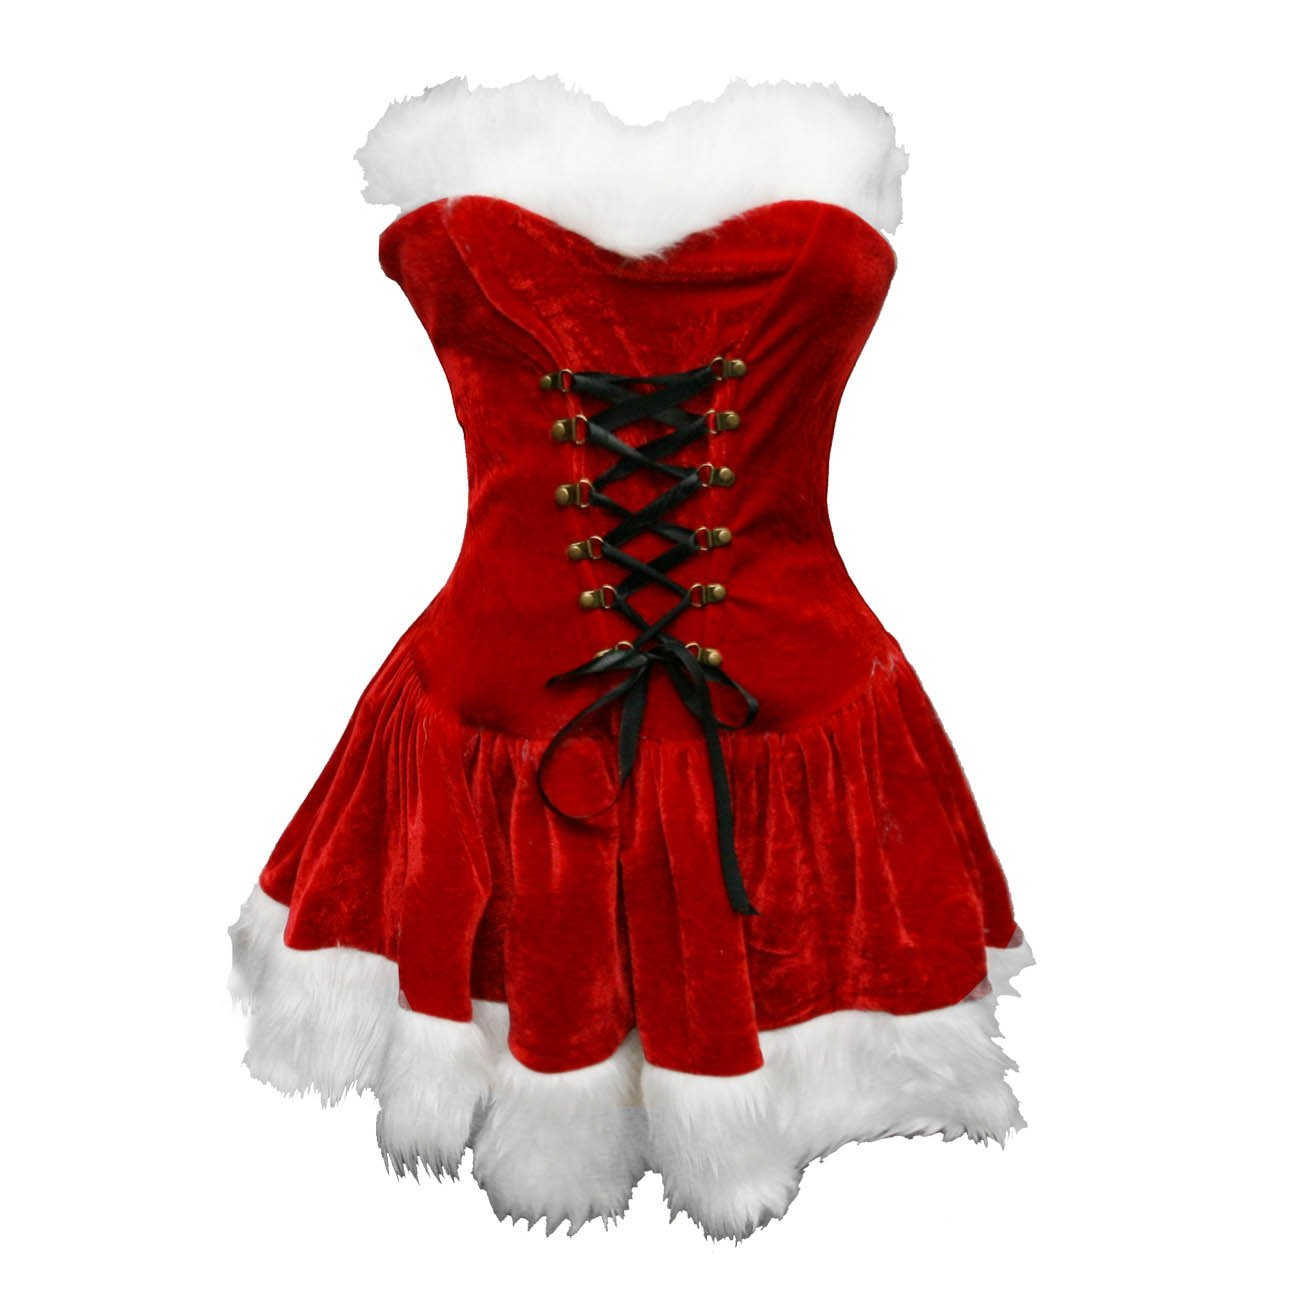 ANOTHERME Christmas Santa Women Costume Outfit Dress with Santa Hat Cosplay Suit for Women